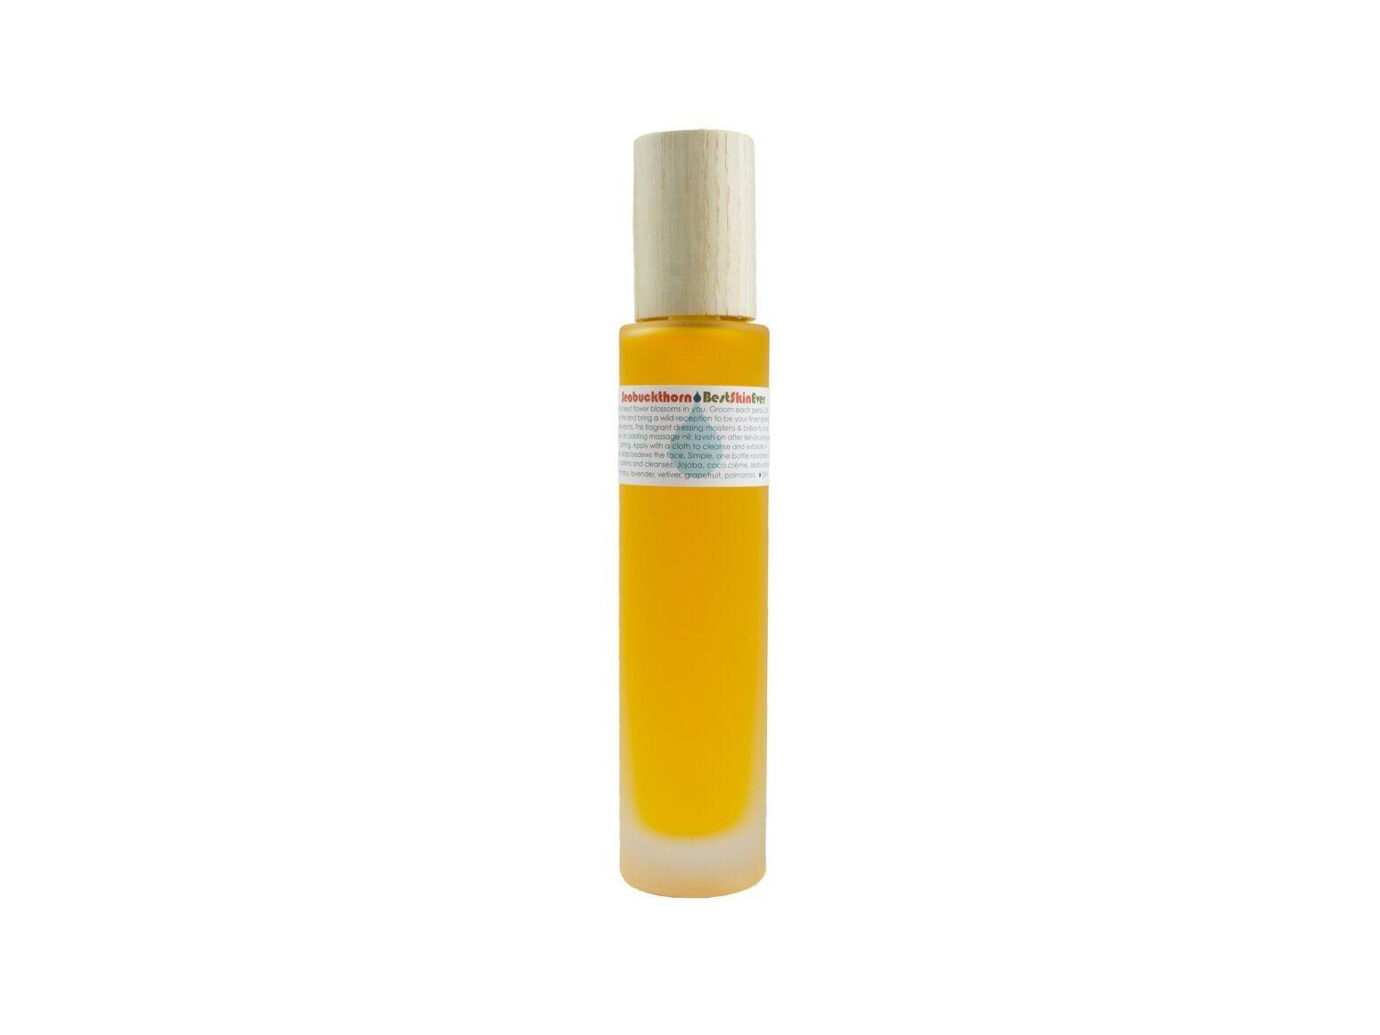 Living Libations Best Skin Ever Seabuckthorn ‎Oil